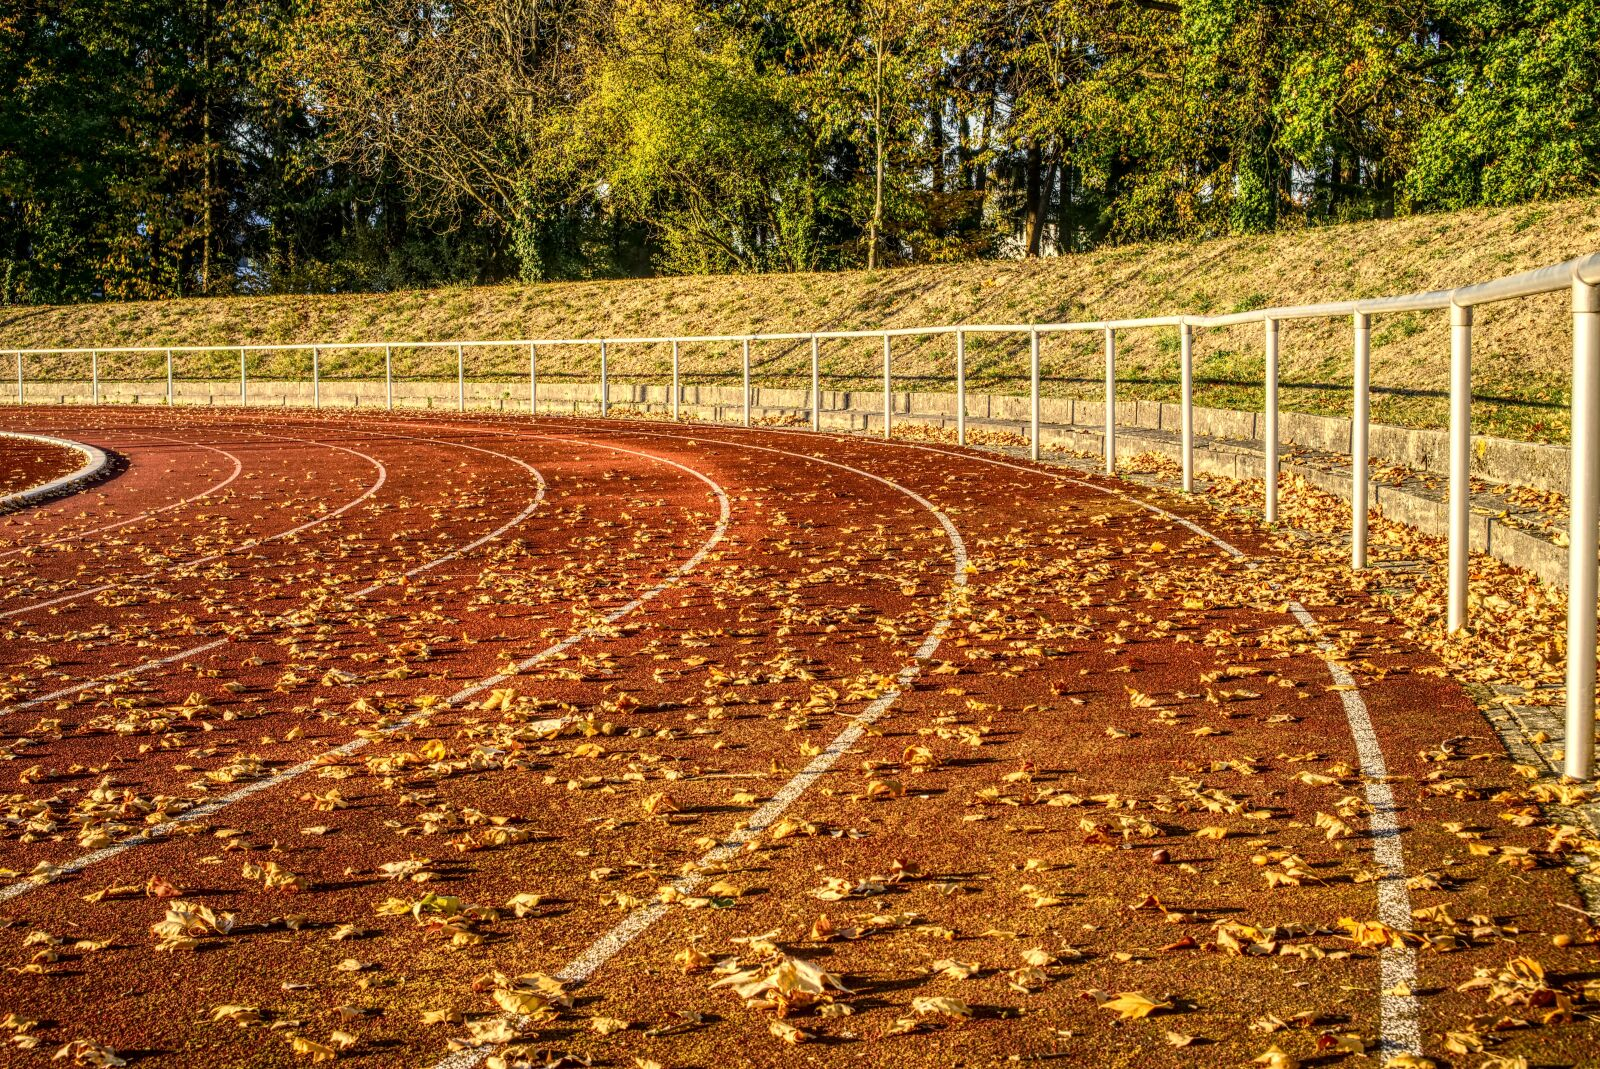 """Sony a6000 sample photo. """"Athletics, competition, sport"""" photography"""